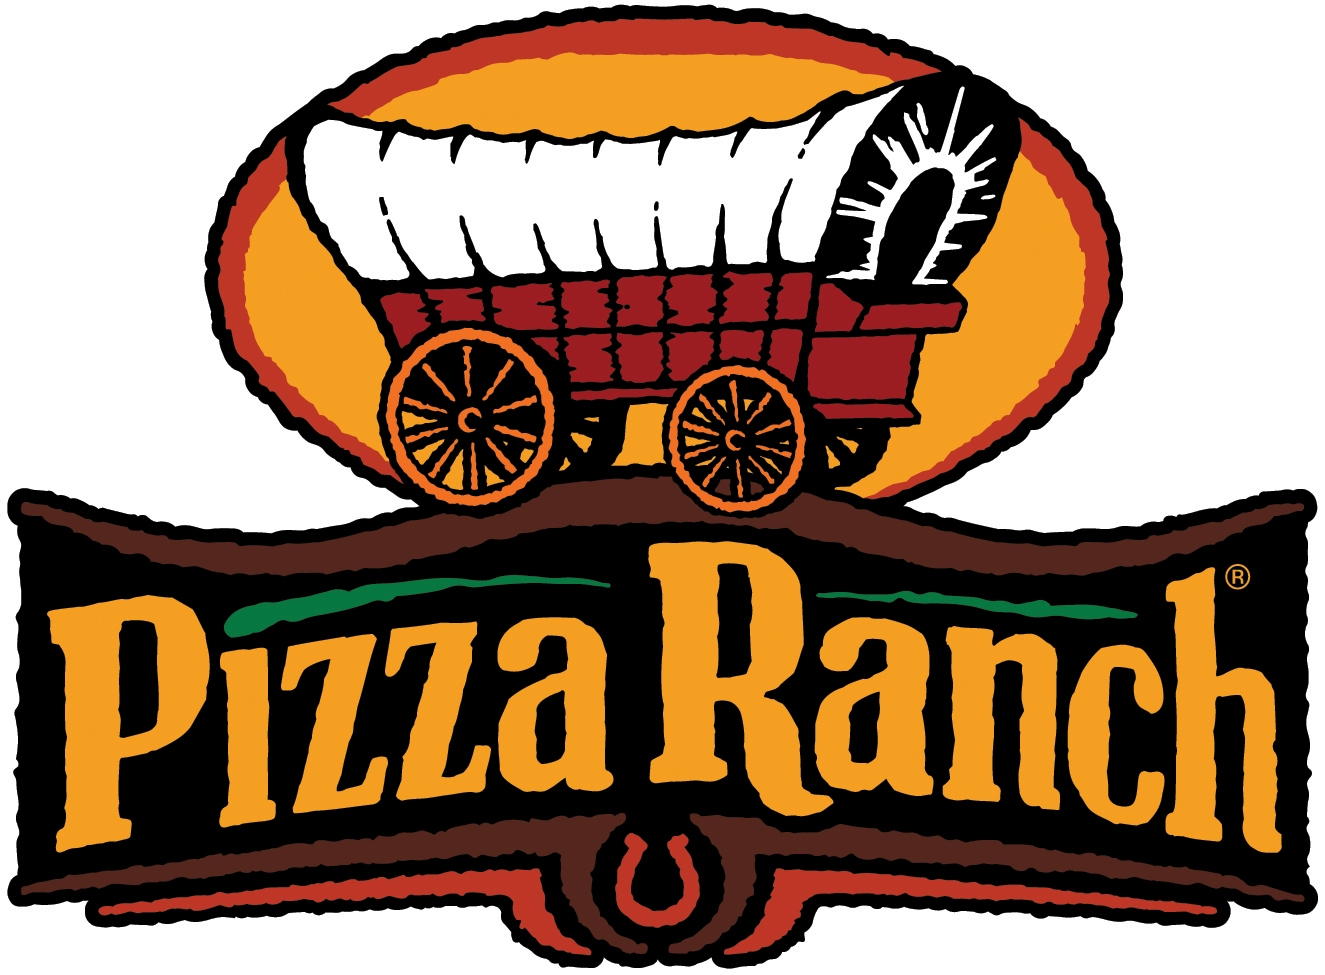 The Pizza Ranch